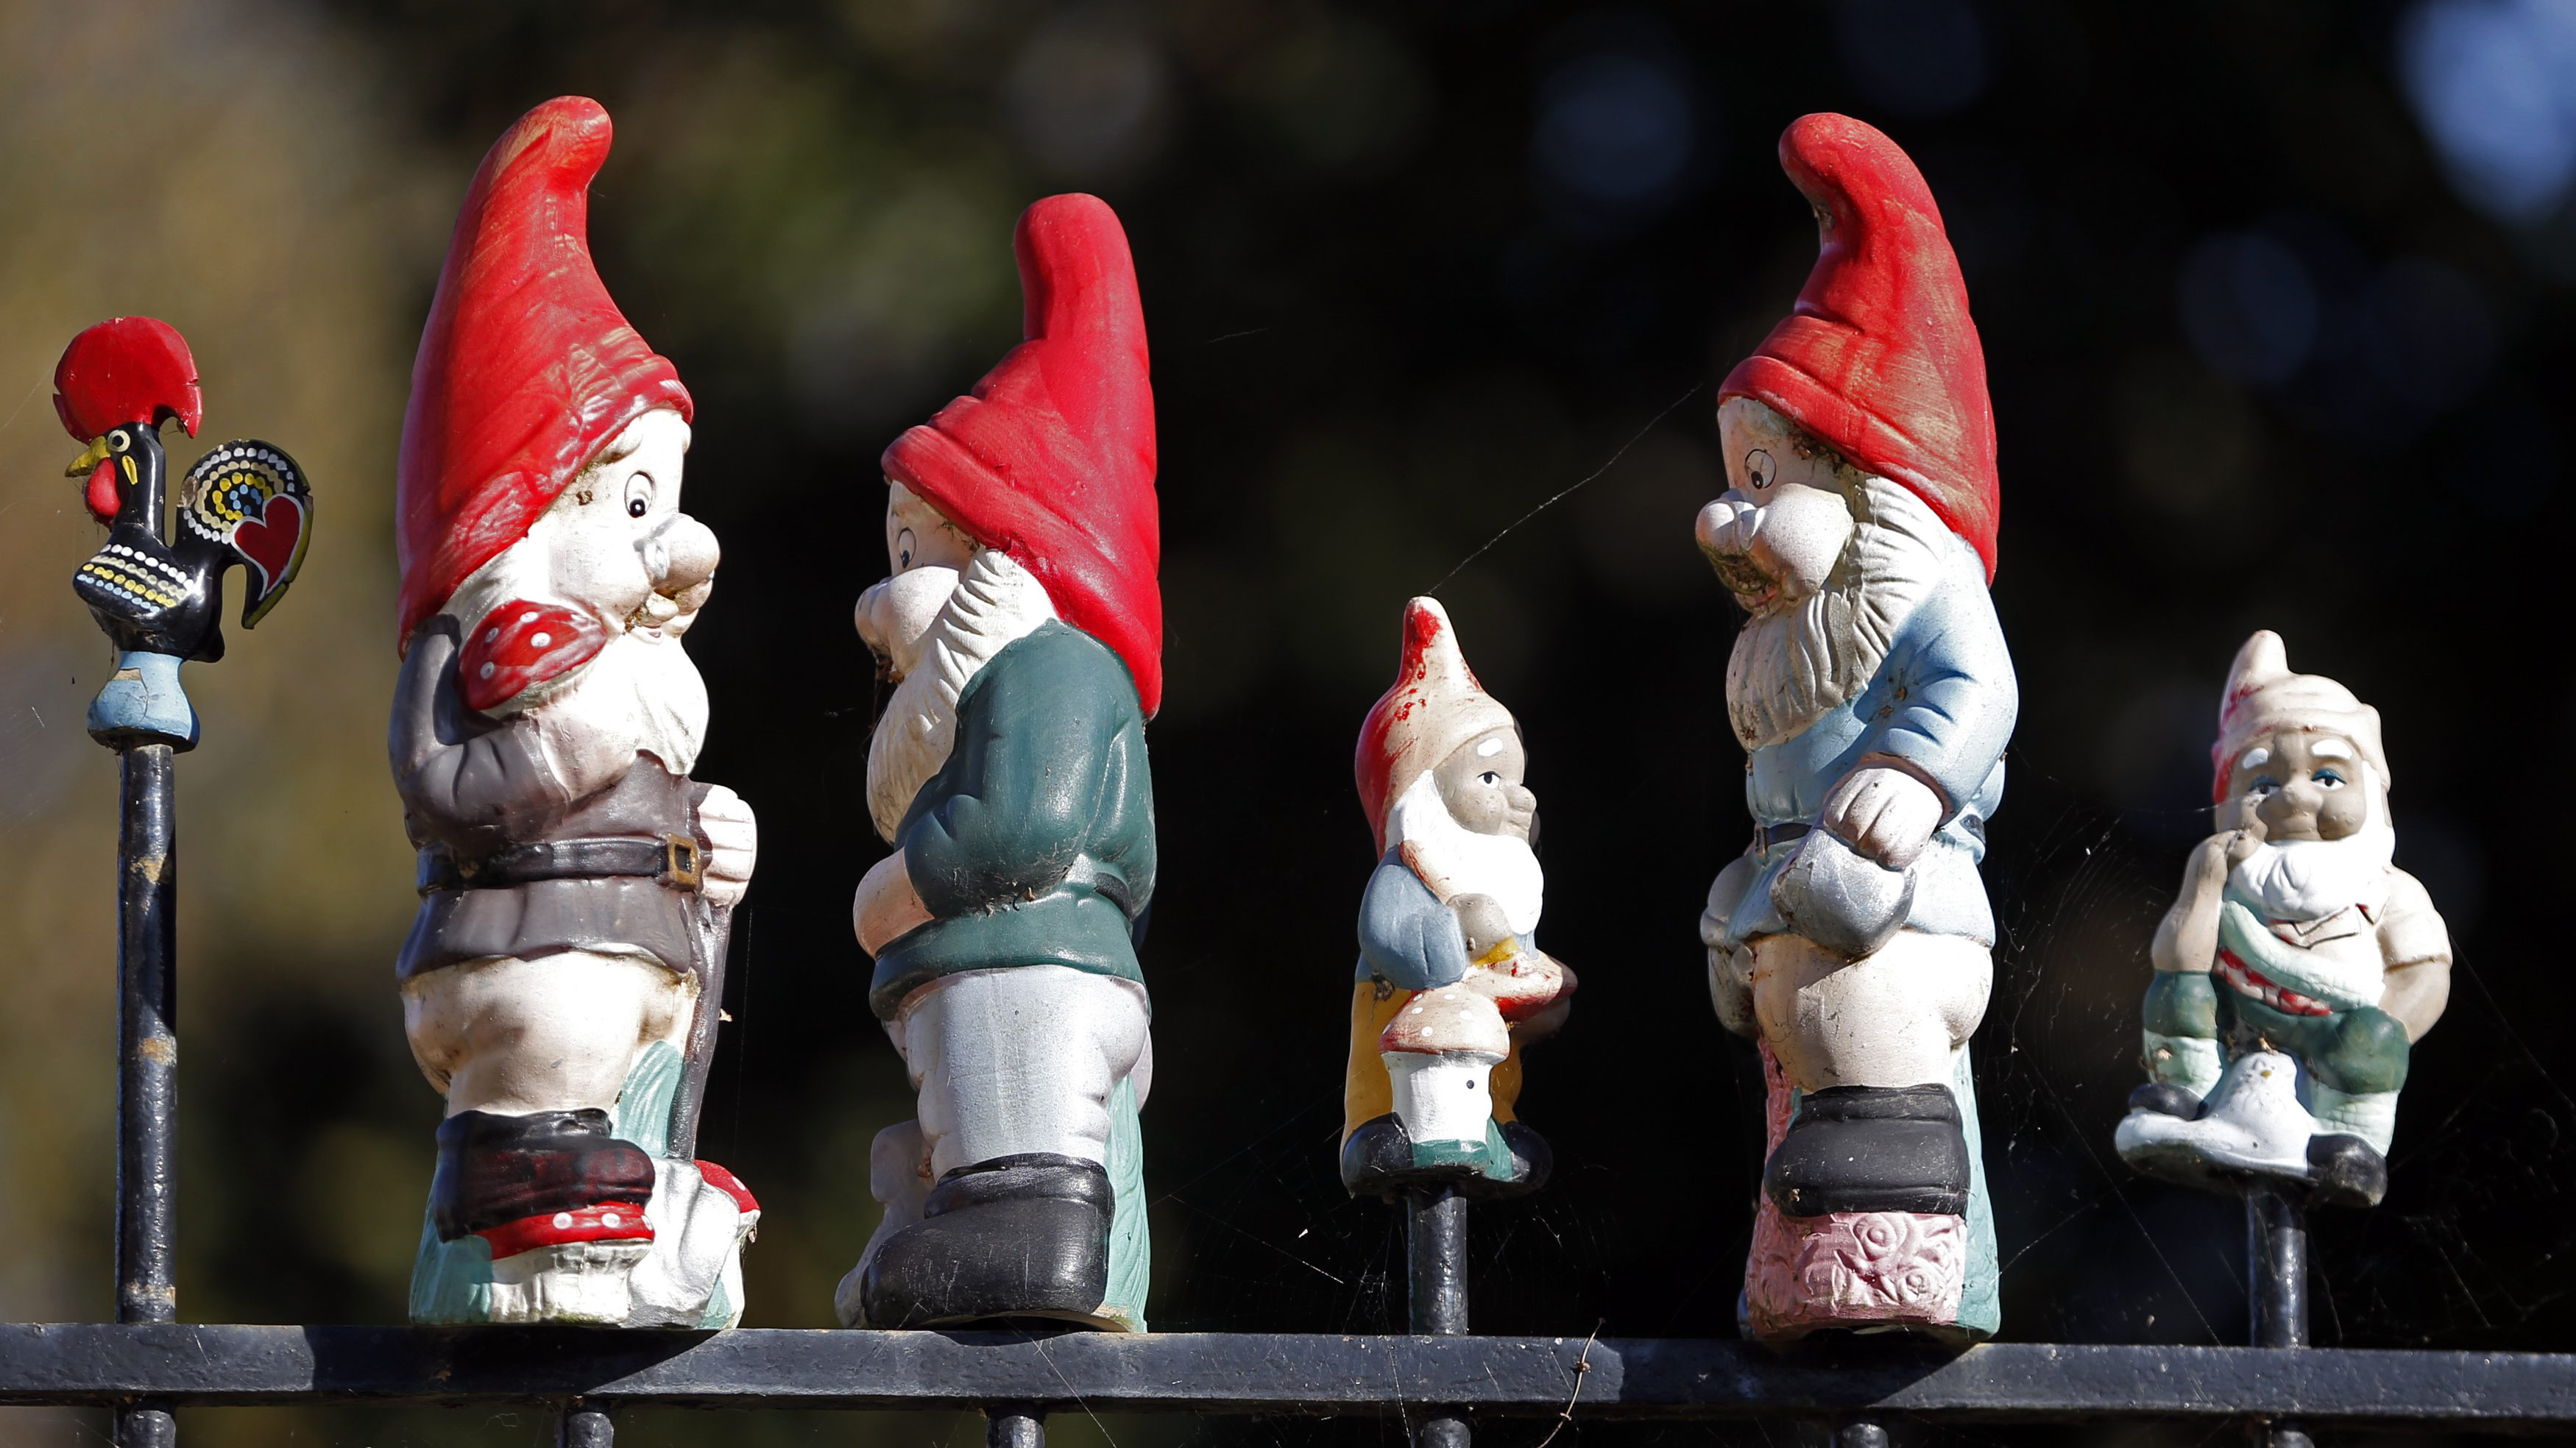 Garden gnomes are seen on the fence of a house in Chateau Thierry November 11, 2014. REUTERS/Charles Platiau (FRANCE - Tags: SOCIETY) - GM1EABC0M2101